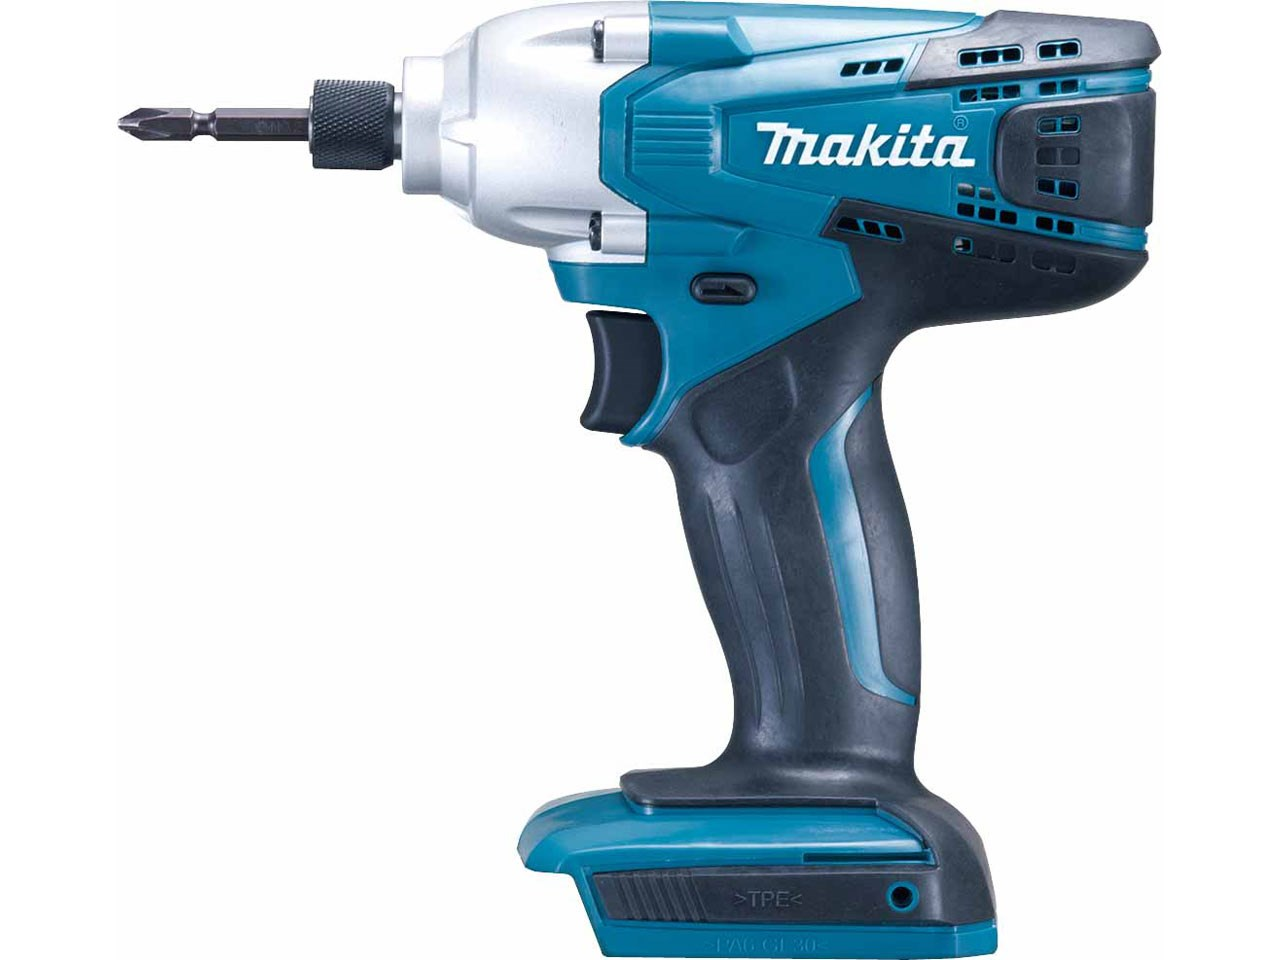 Makita TD127DZ 18v G Series Li-ion Impact Driver Bare Unit